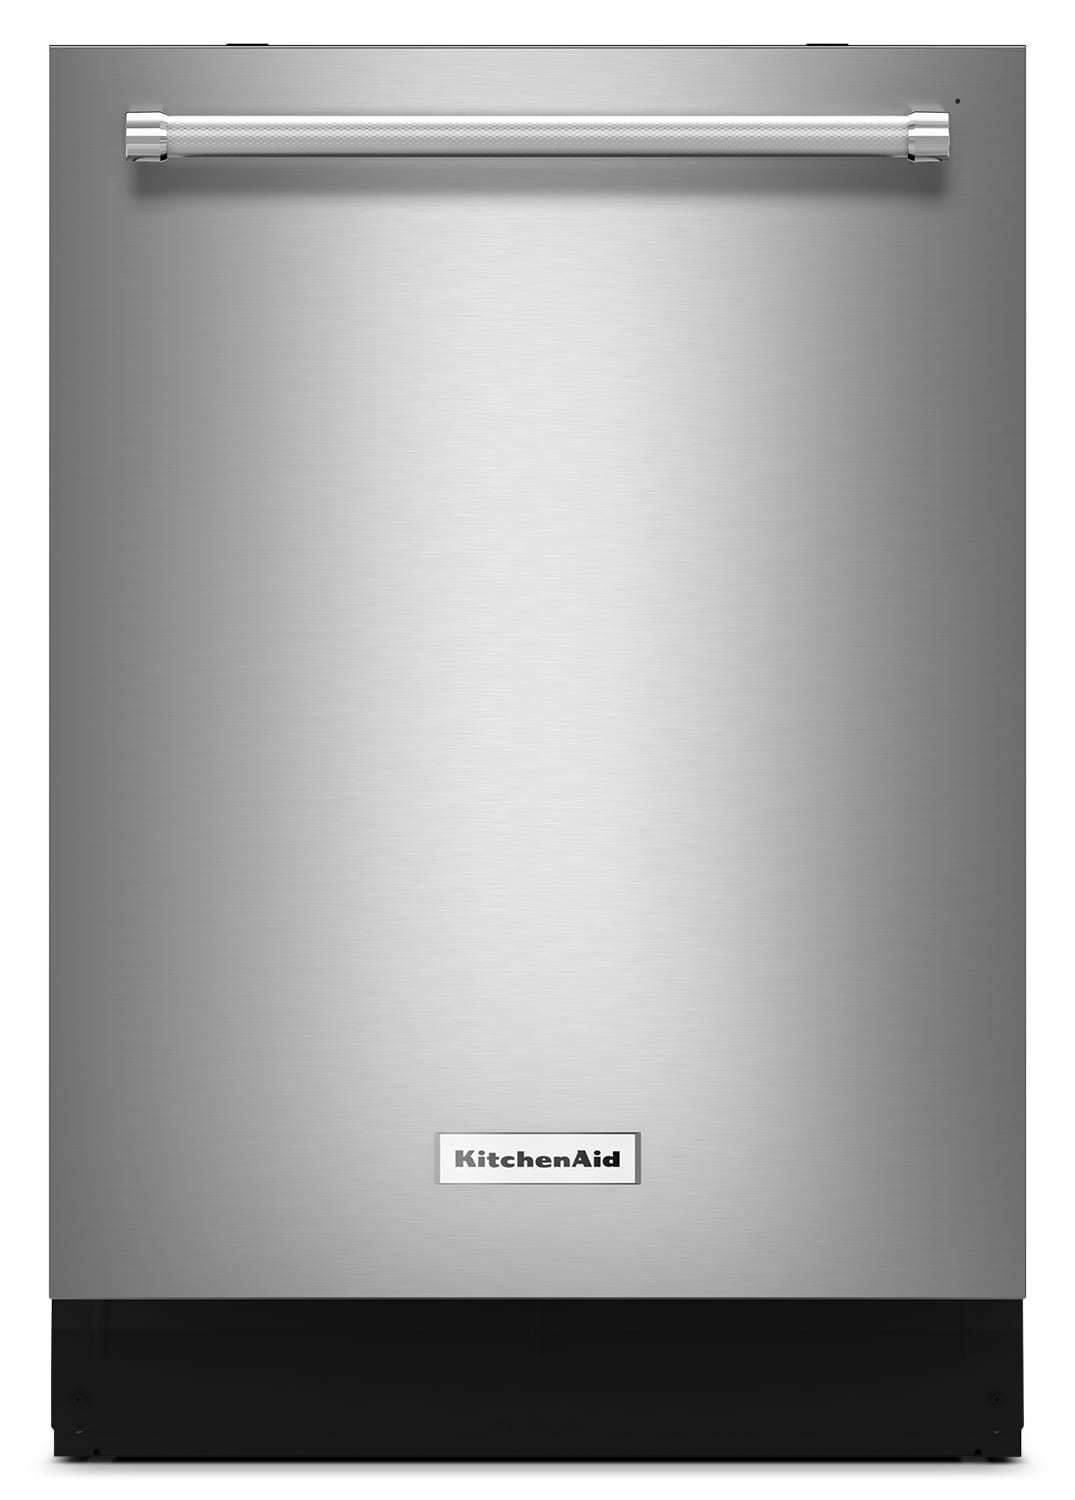 "Clean-Up - KitchenAid 24"" Dishwasher with Clean Water Wash System - Stainless Steel"